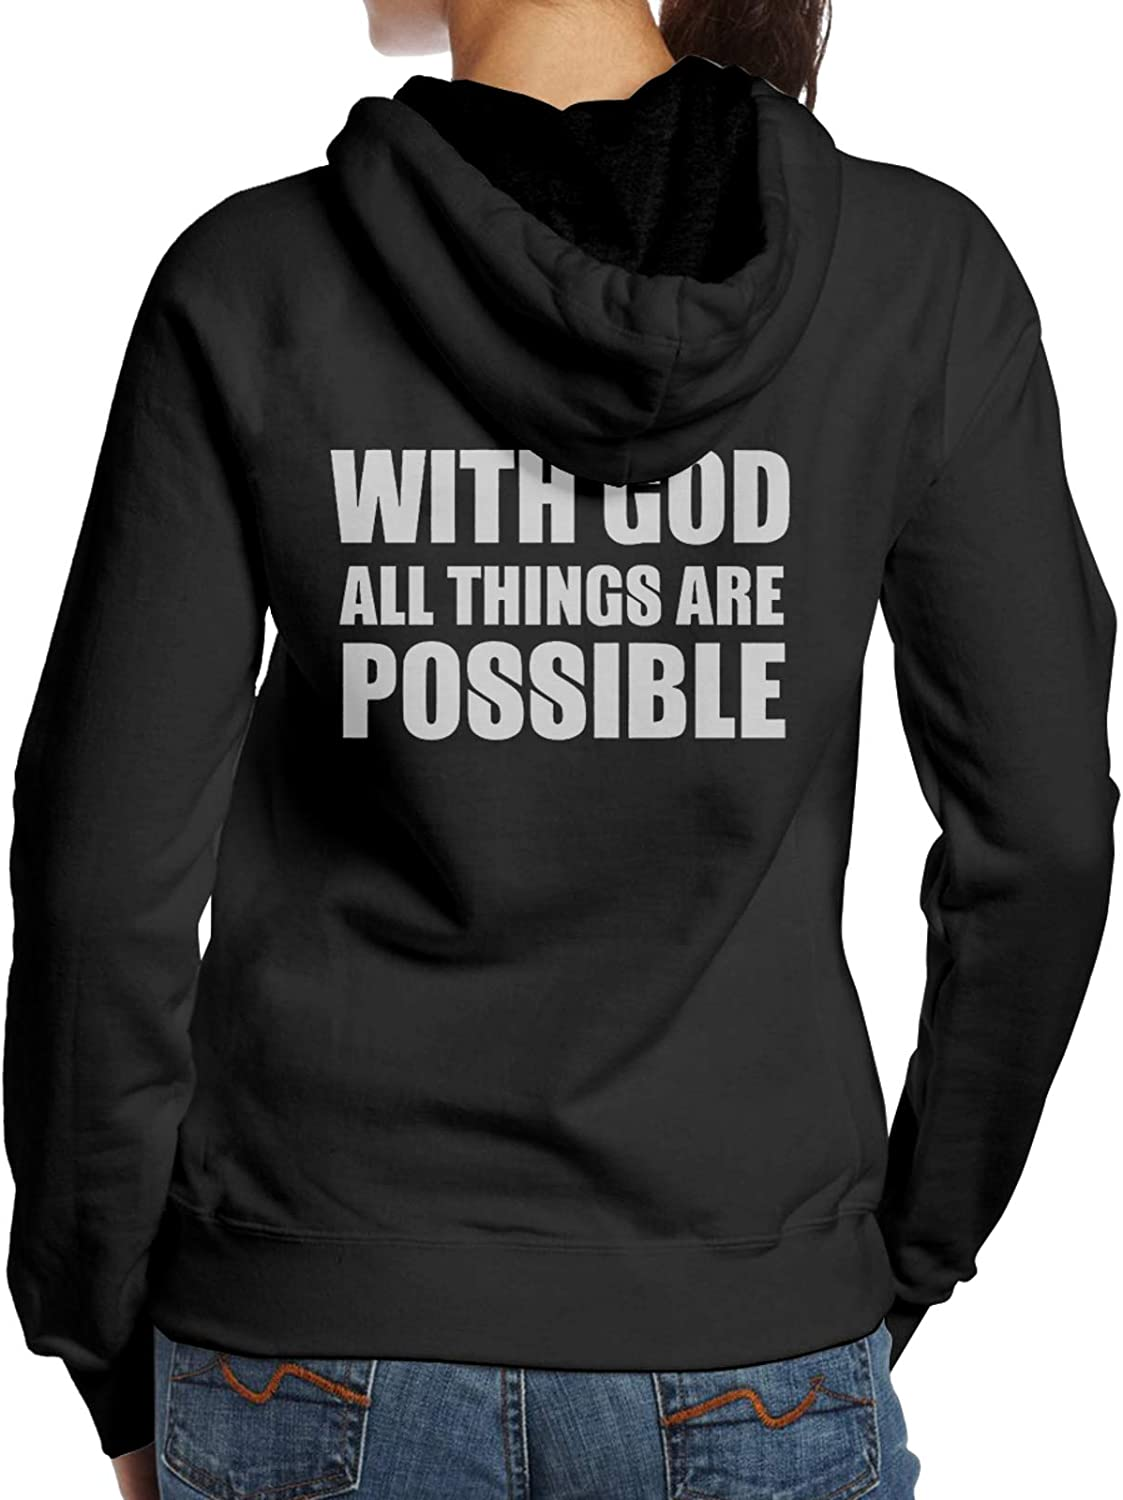 depot With God All Things Are Daily bargain sale Sweatshi Hoodie Fashion Possible Woman'S